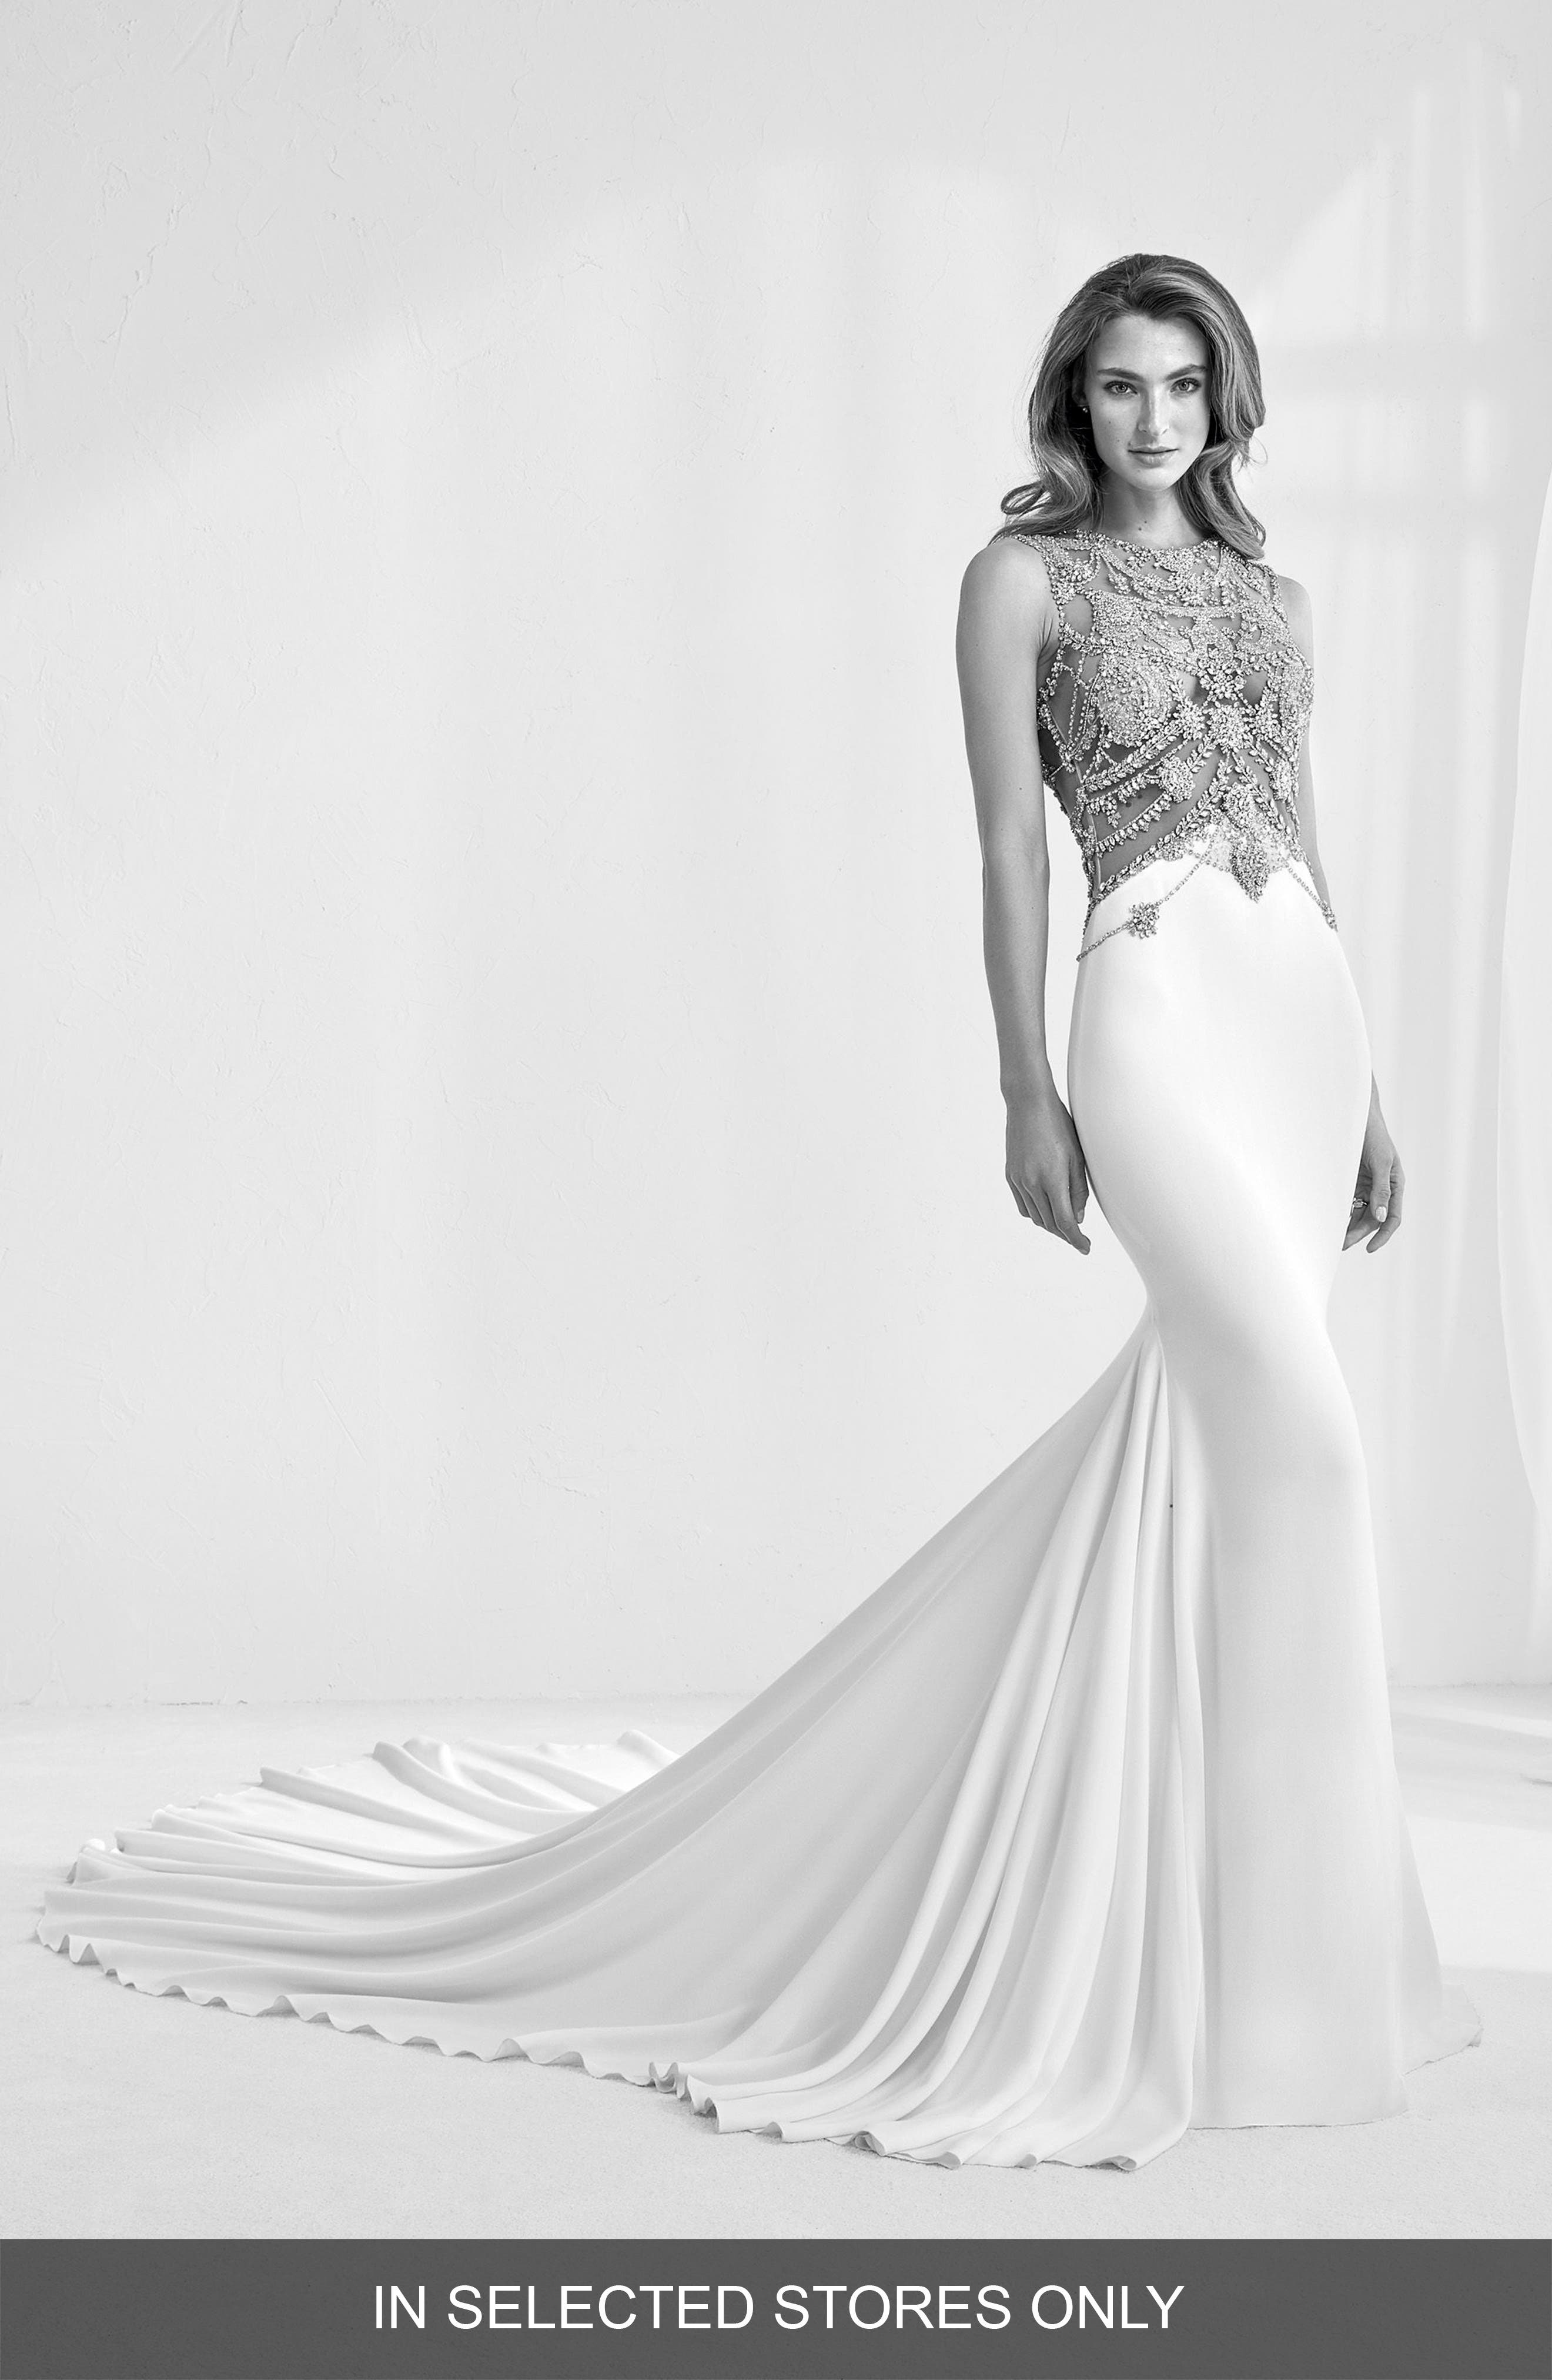 Ramir Jeweled Bodice Crepe Mermaid Gown,                         Main,                         color, Off Wh/ Nd